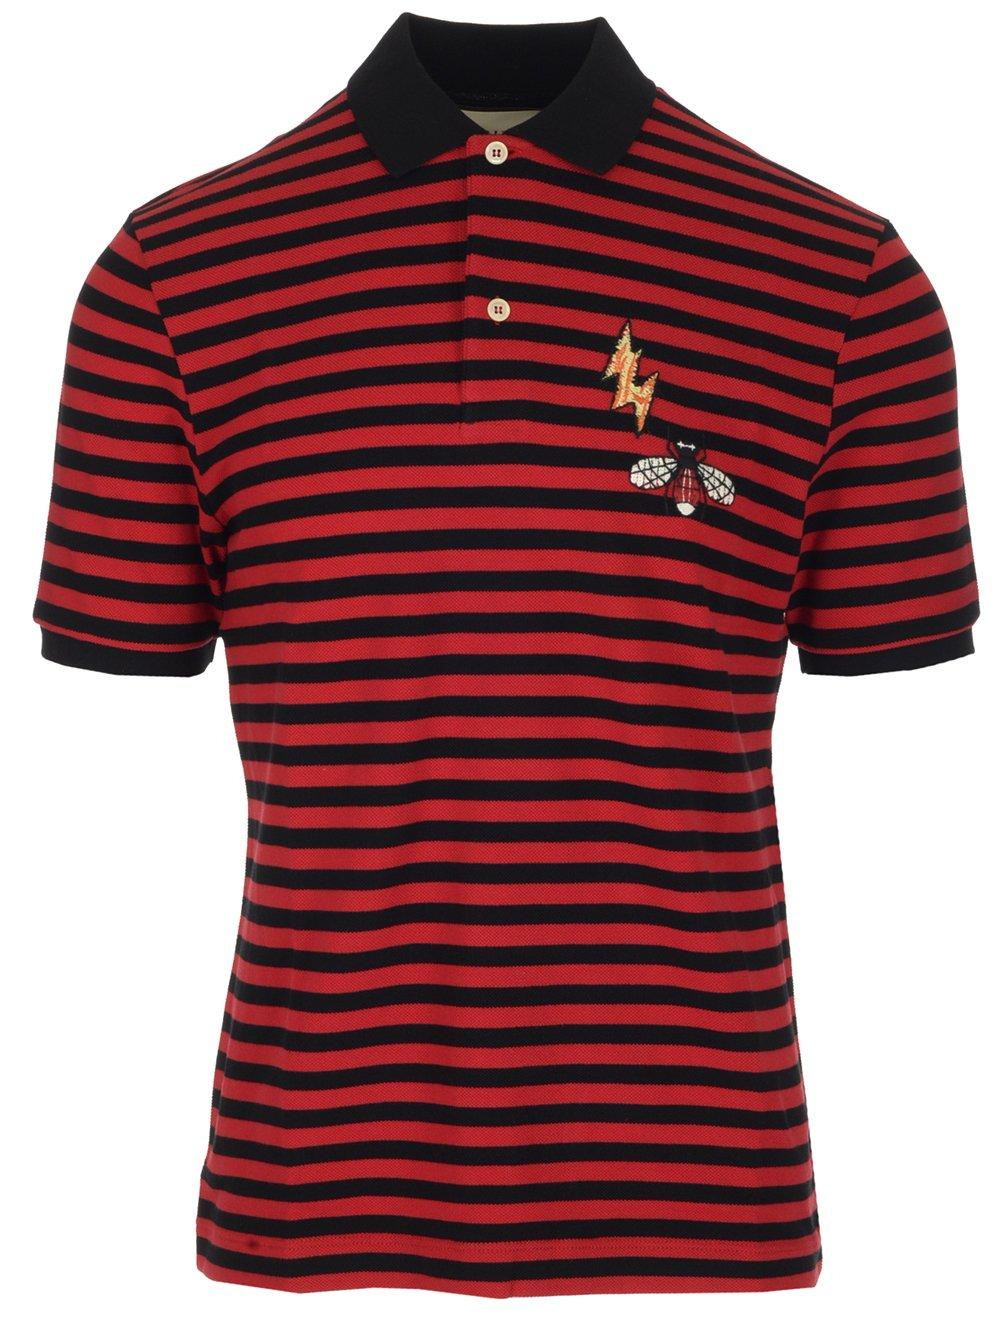 59406462 Lyst - Gucci Bee Patch Striped Polo Shirt in Red for Men